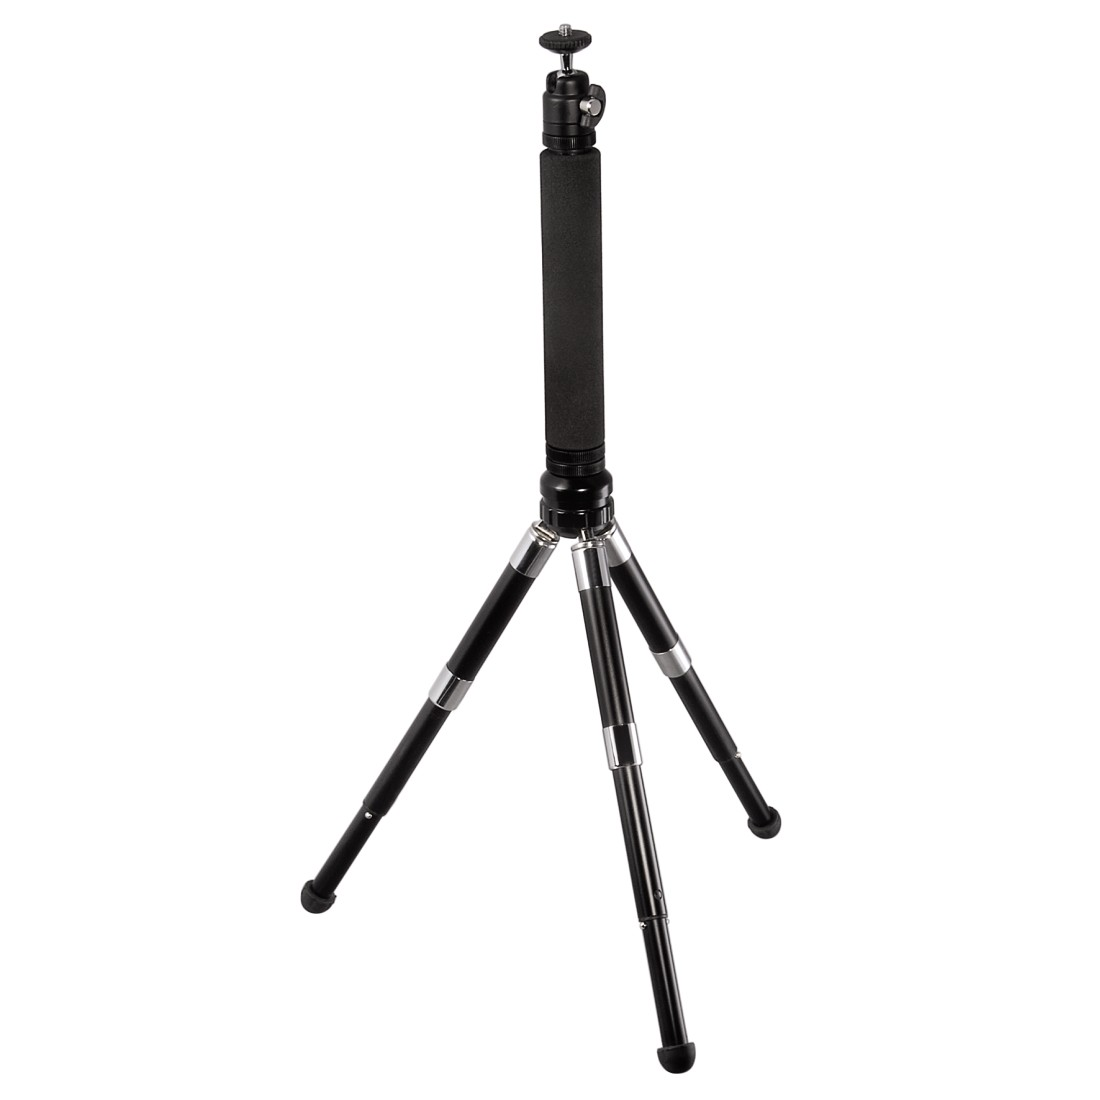 abx2 High-Res Image 2 - Hama, Traveller Multi Table Top Tripod, with Removable Telescopic Tube